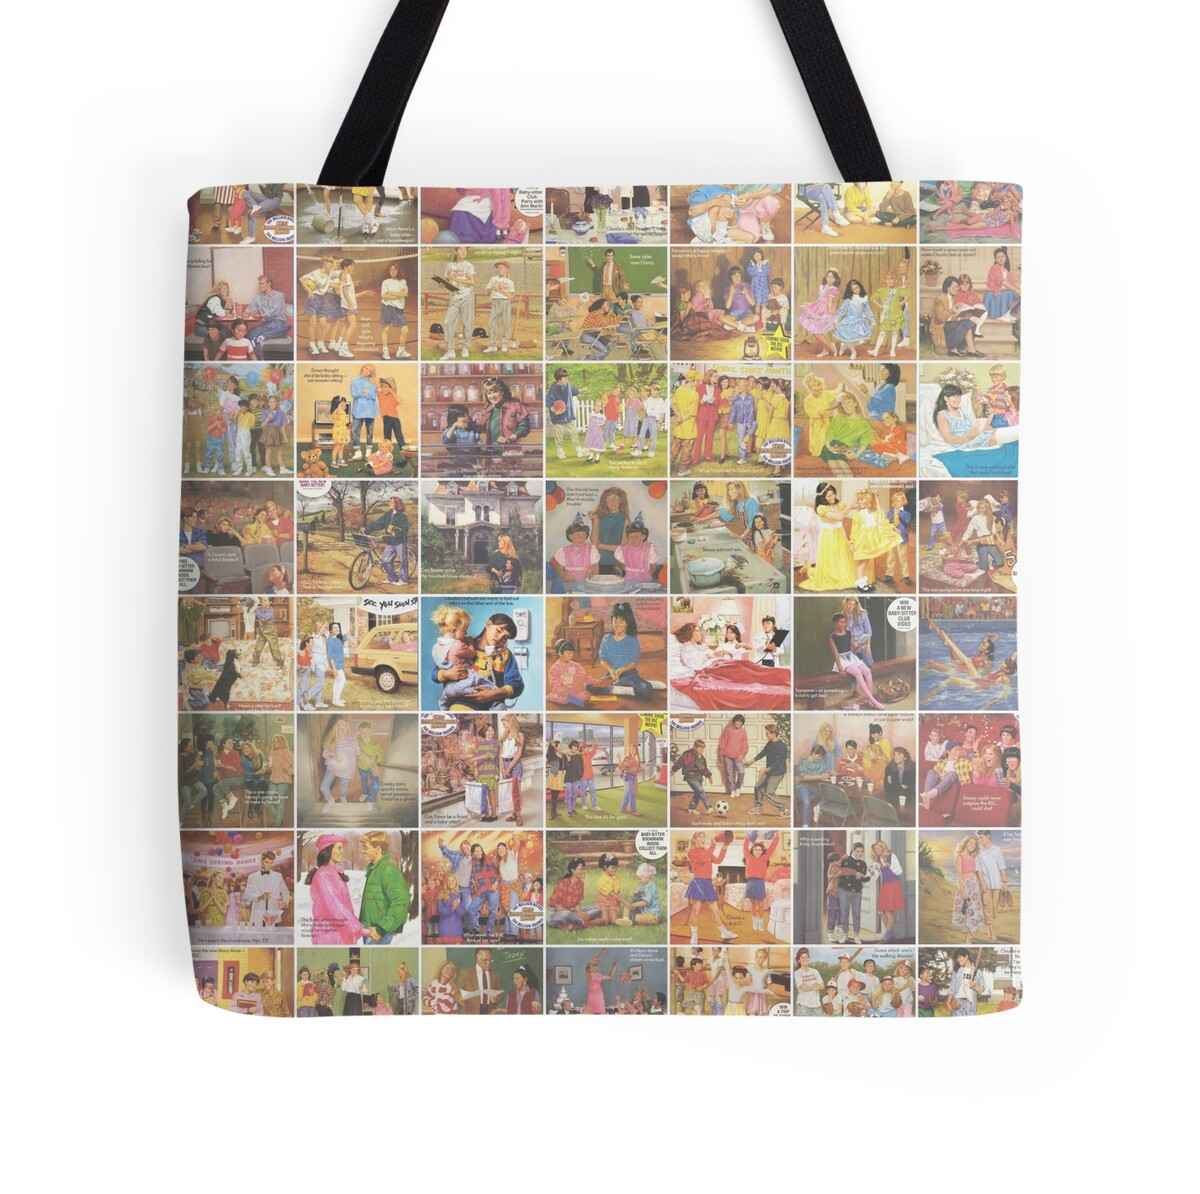 Babysitters Club tote bag